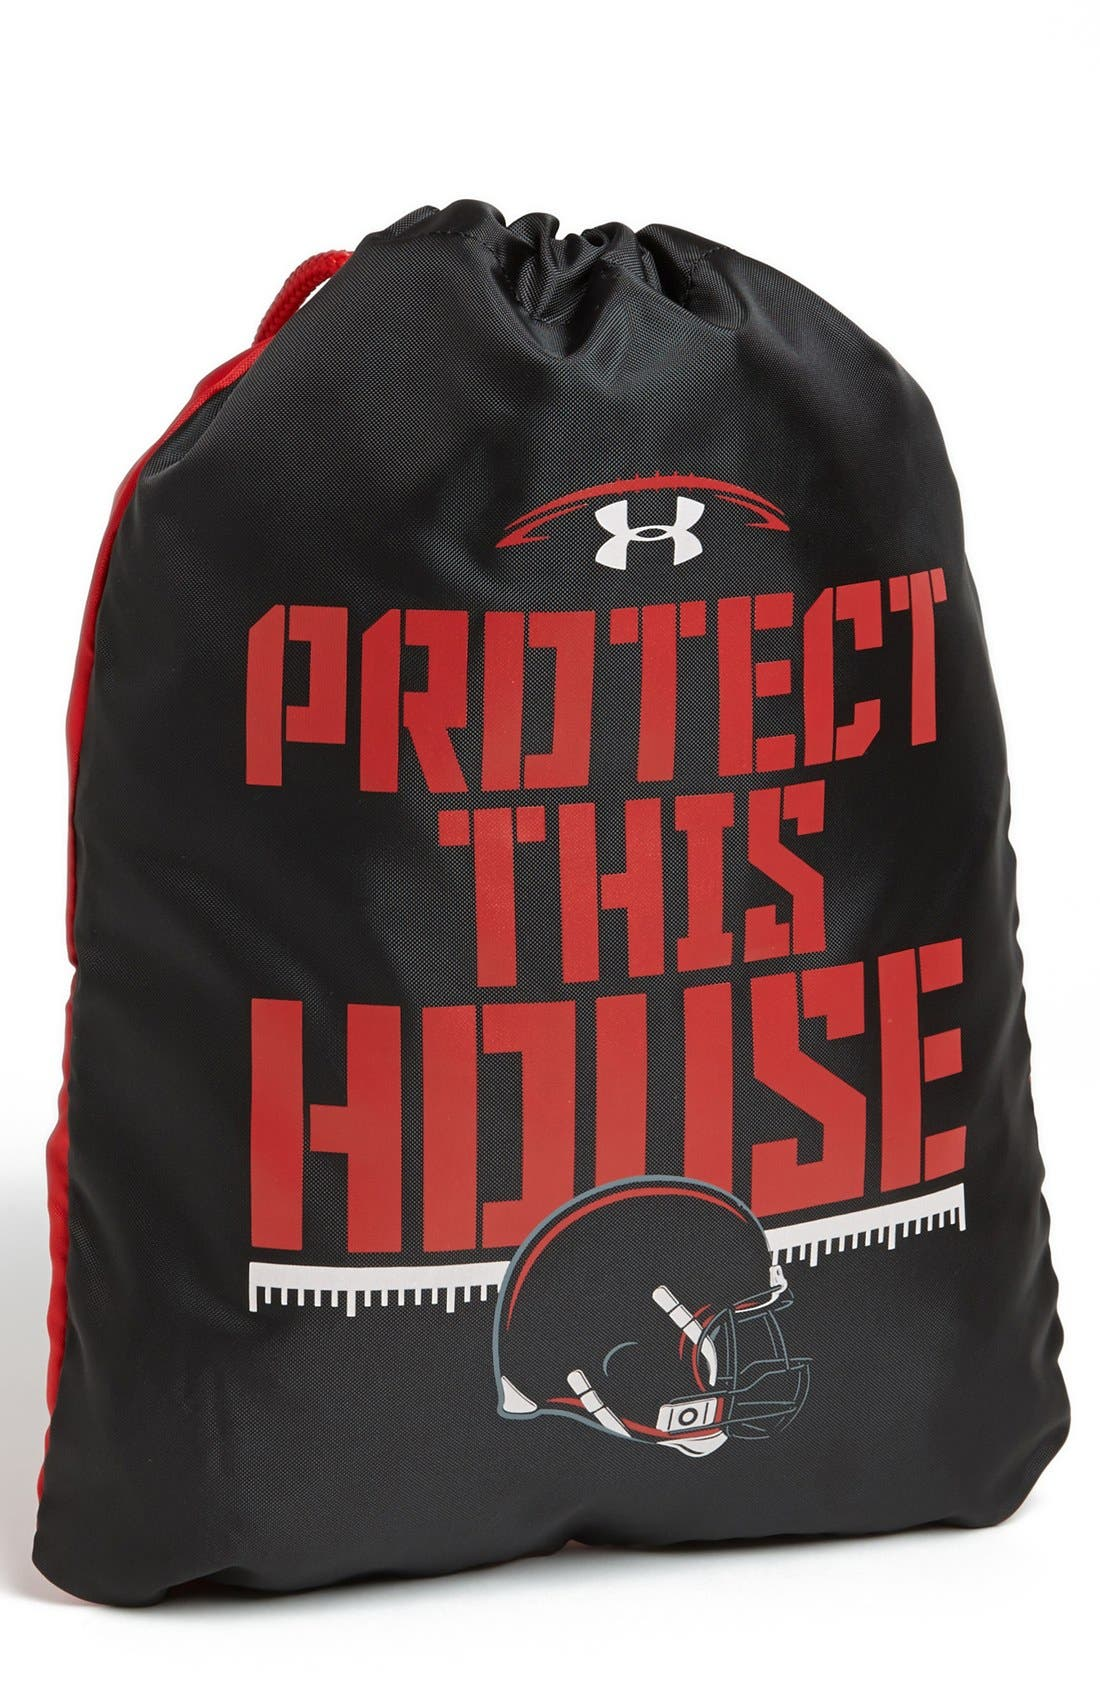 Alternate Image 1 Selected - Under Armour 'Ozzie' Drawstring Backpack (Boys)